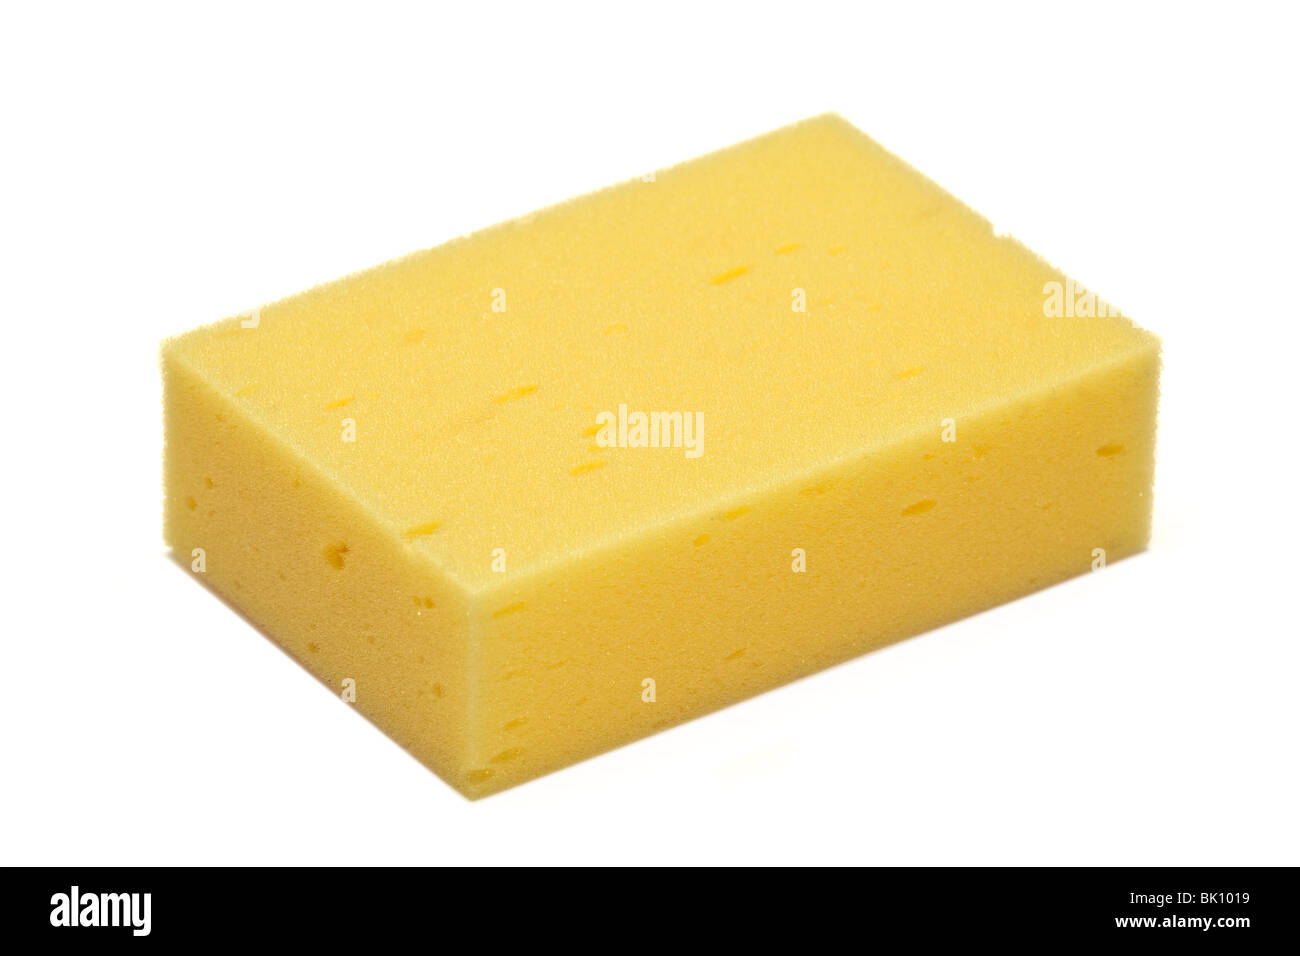 oblong yellow sponge - Stock Image